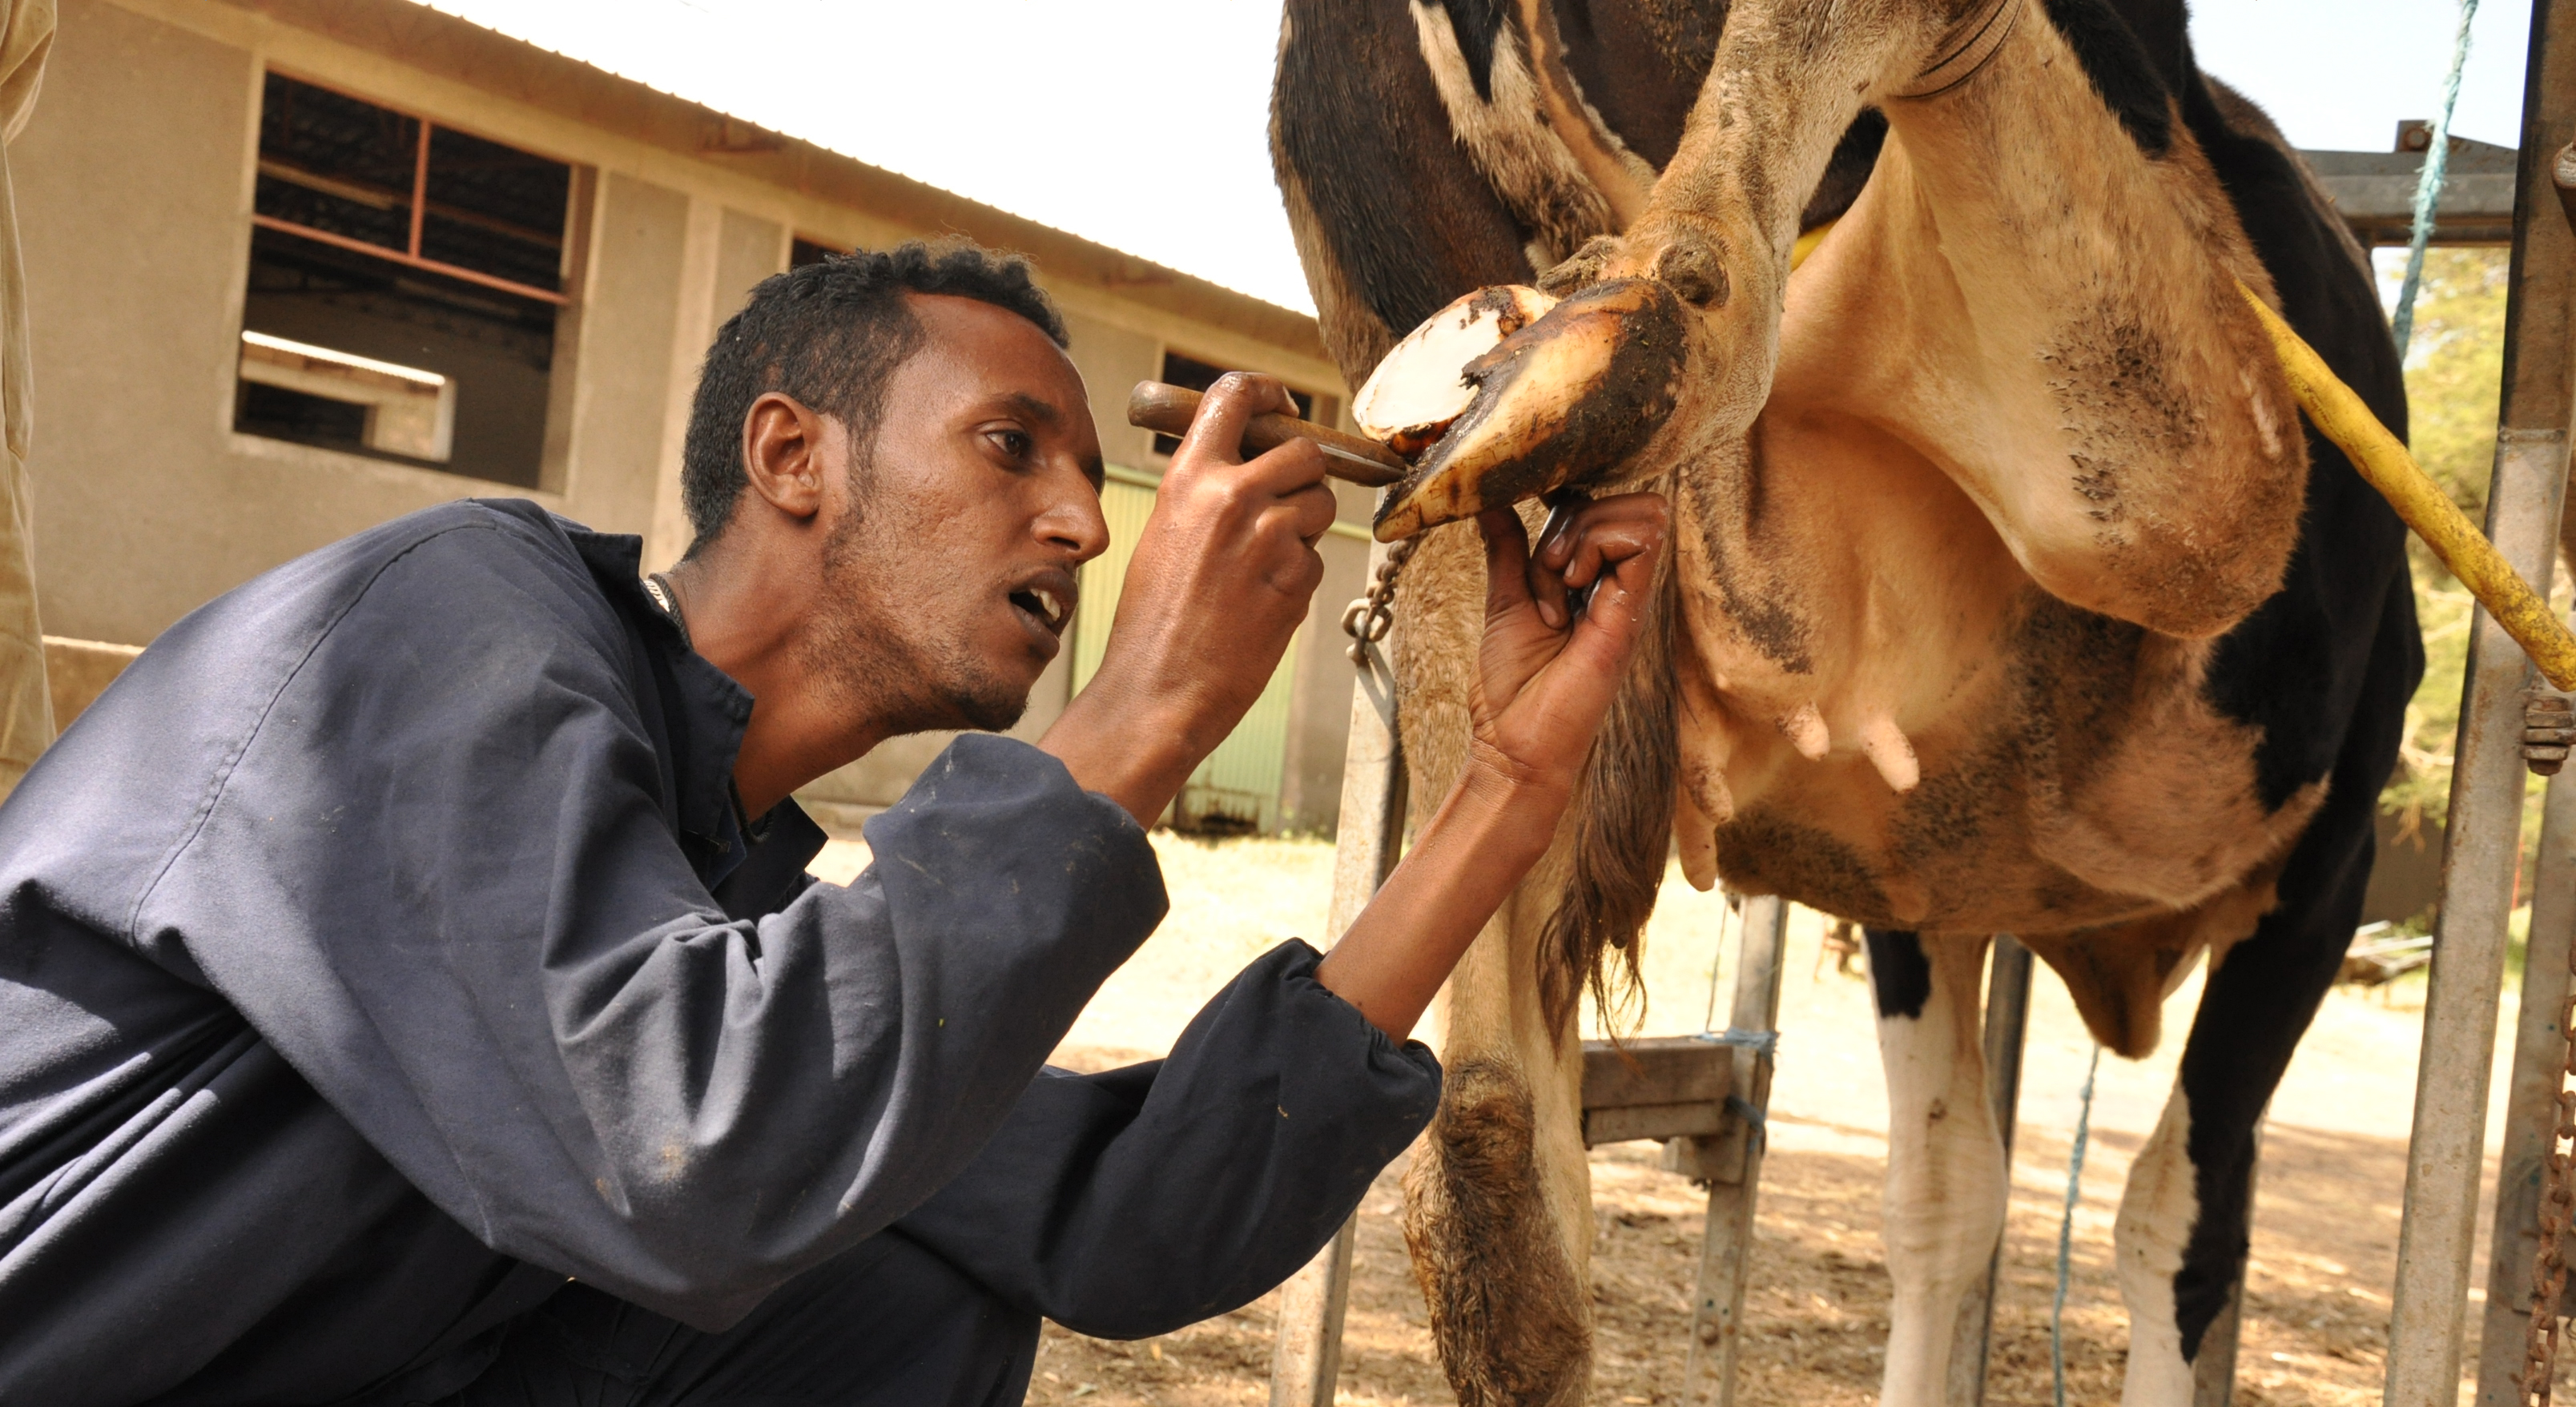 Wondewesen Kebede a dairy advisor trims a cow's hoof at Nardel Farm, Debre Zeit, Ethiopia where he offers such services to commercial dairy farmers